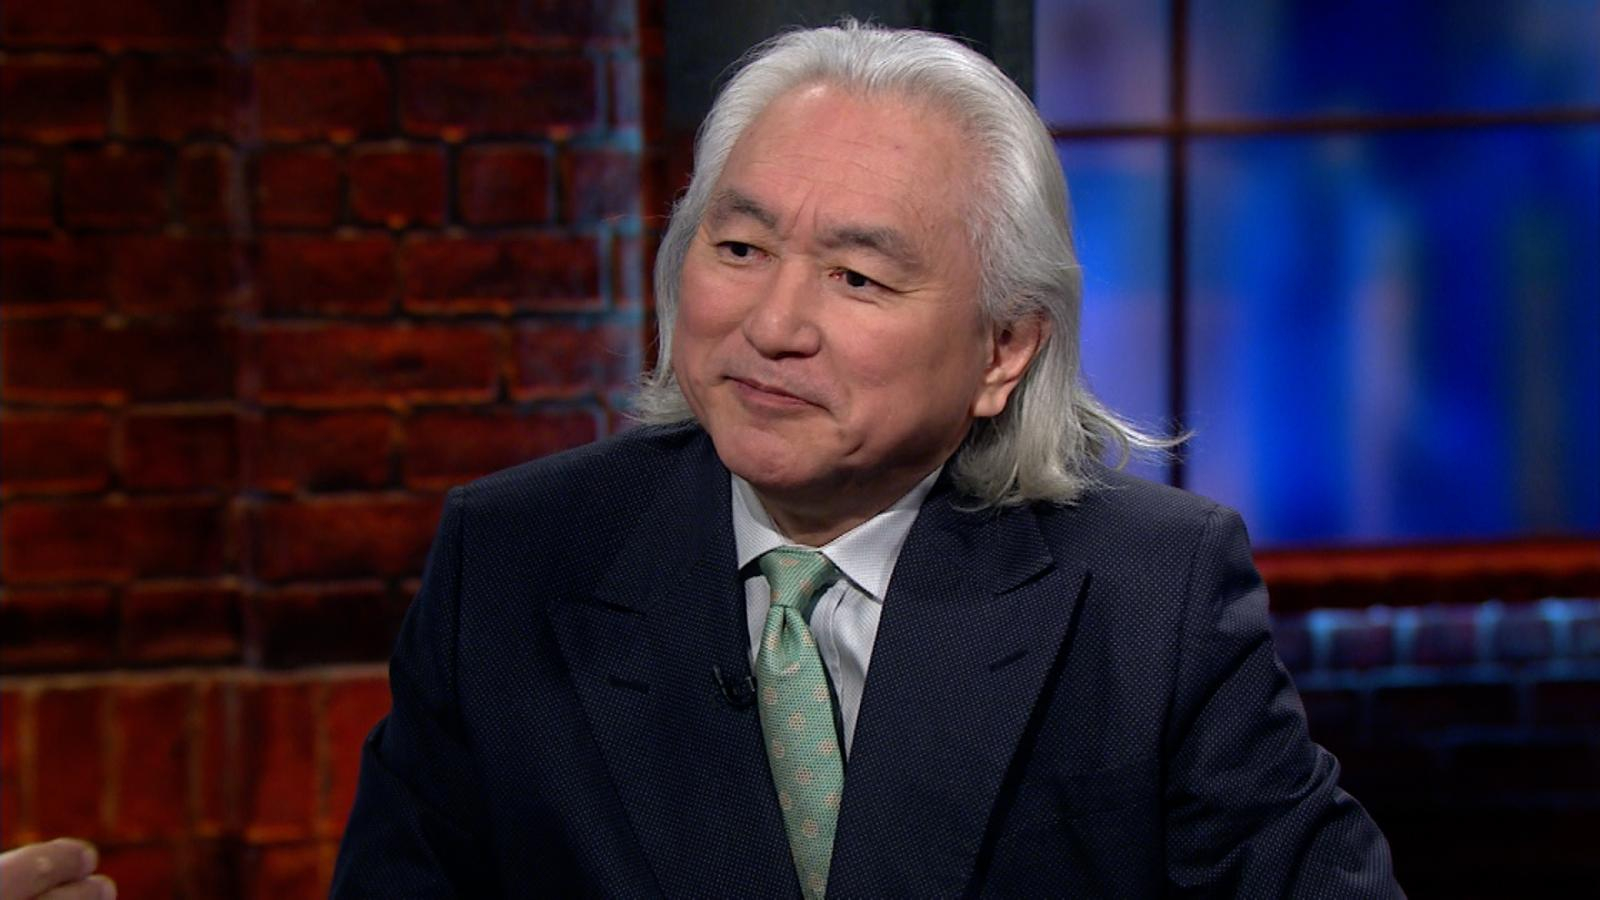 Physicist Michio Kaku compares possible contact between humans and aliens to the invasion of Mexico |  Video